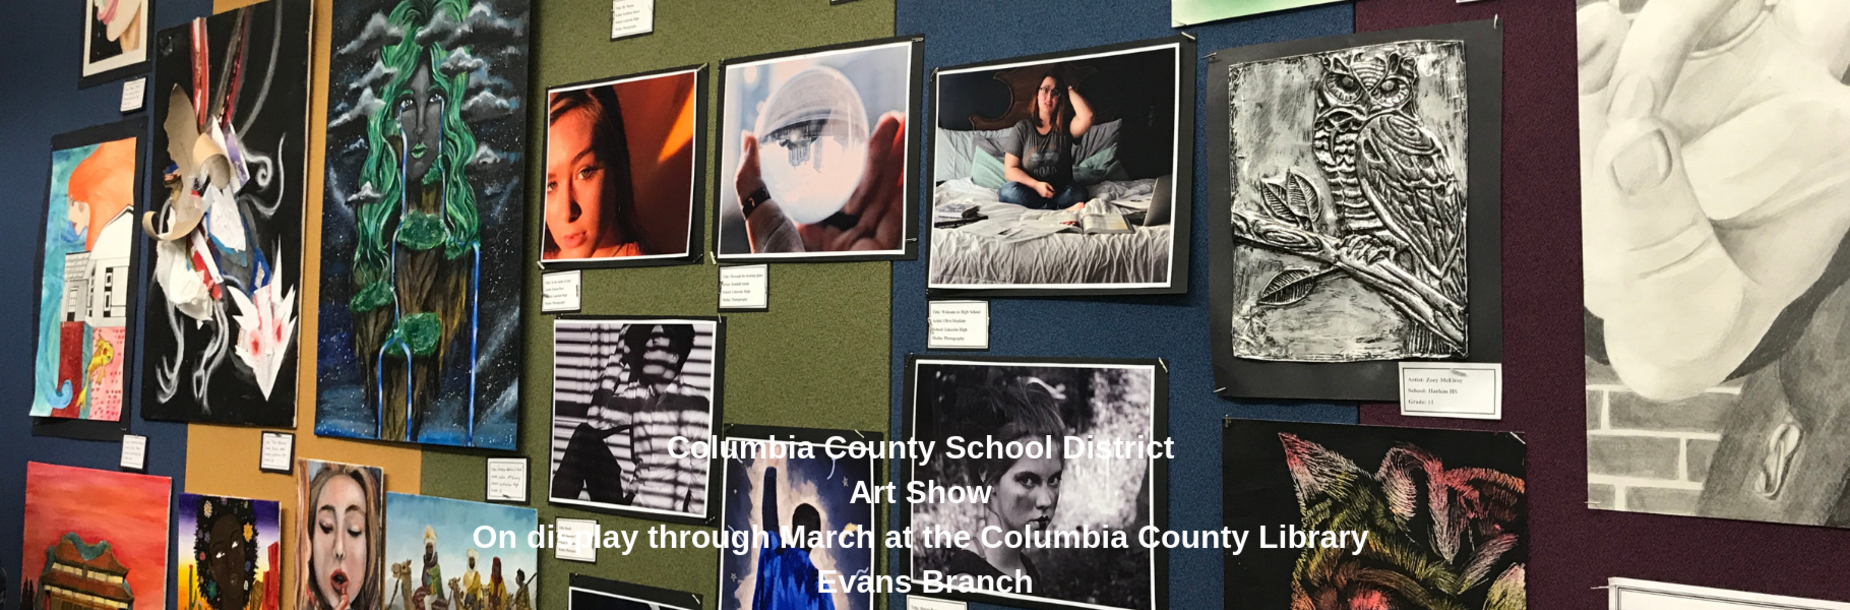 Art work on display at the Columbia County Library Evans branch for the annual art show